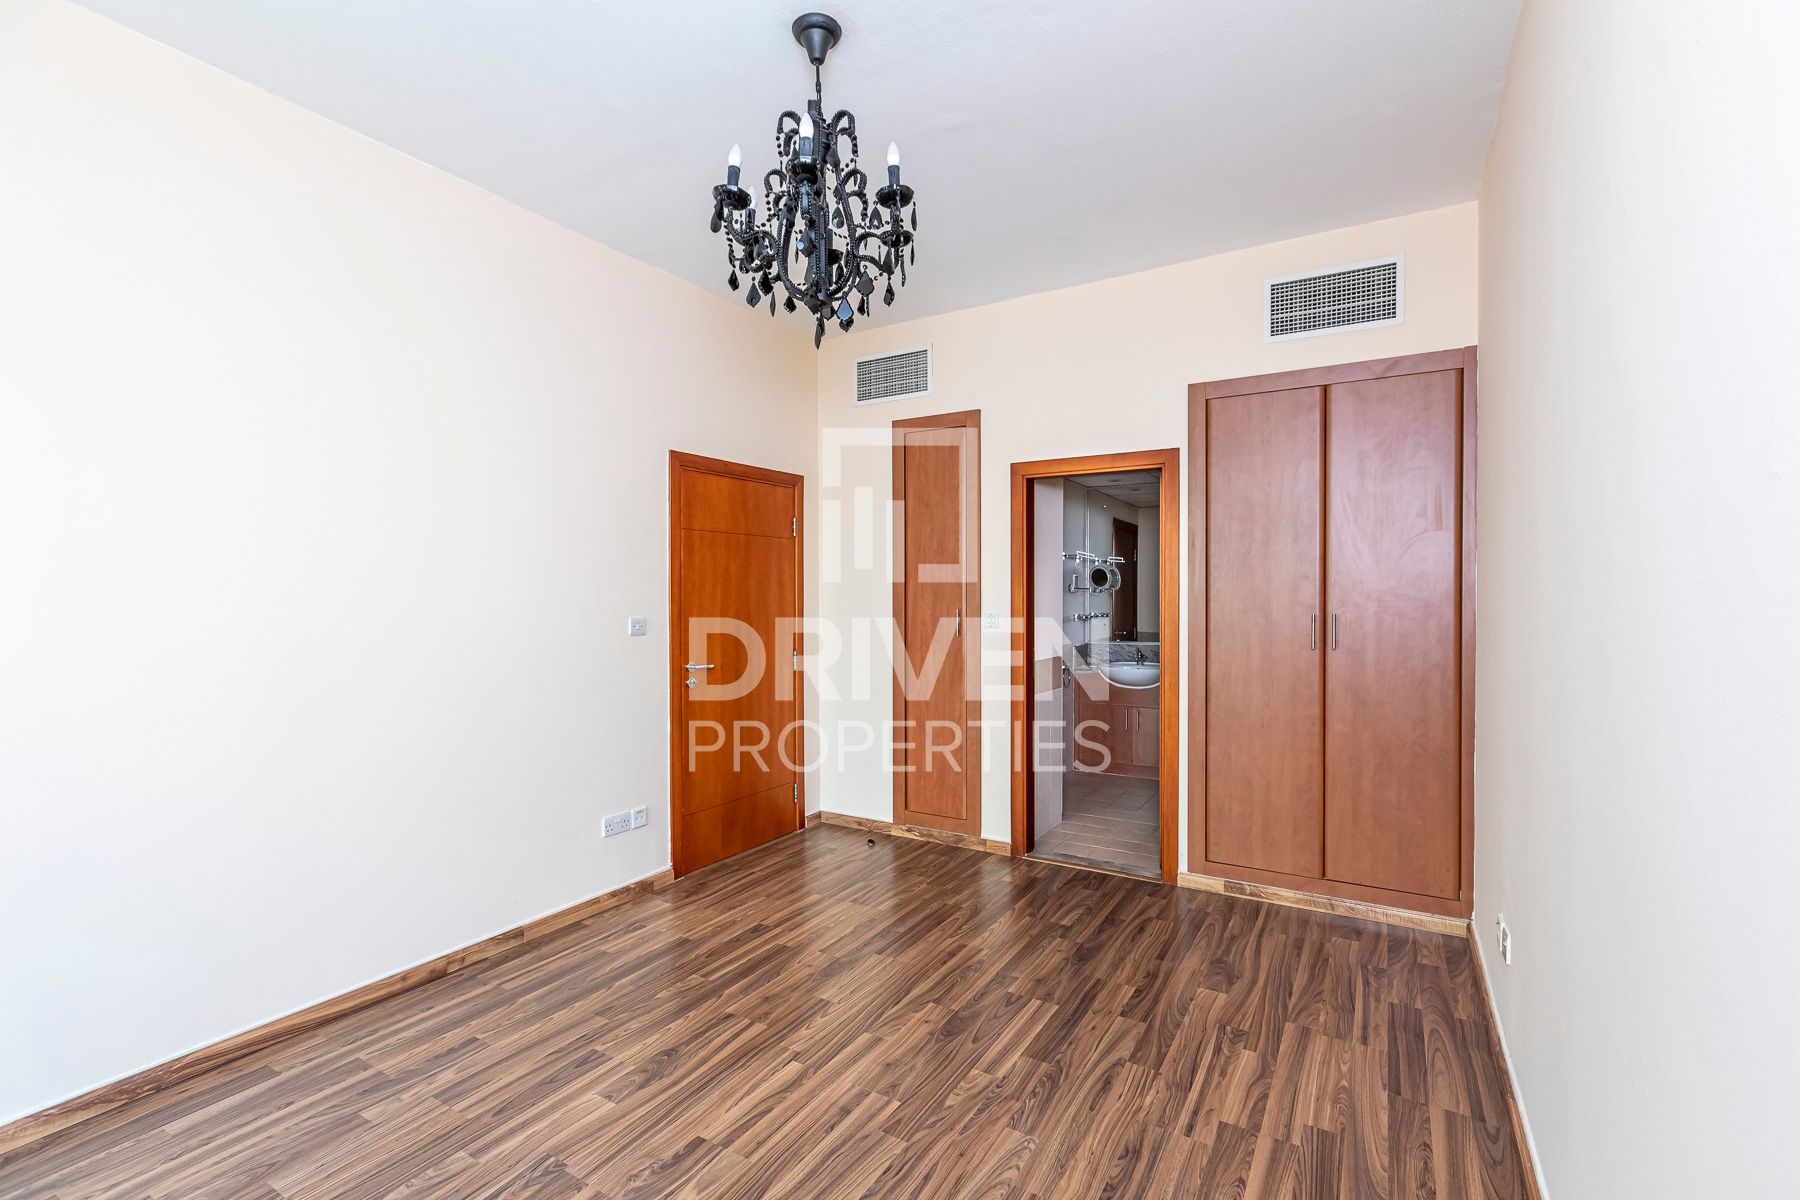 Apartment for Rent in Al Thayyal 2 - Greens